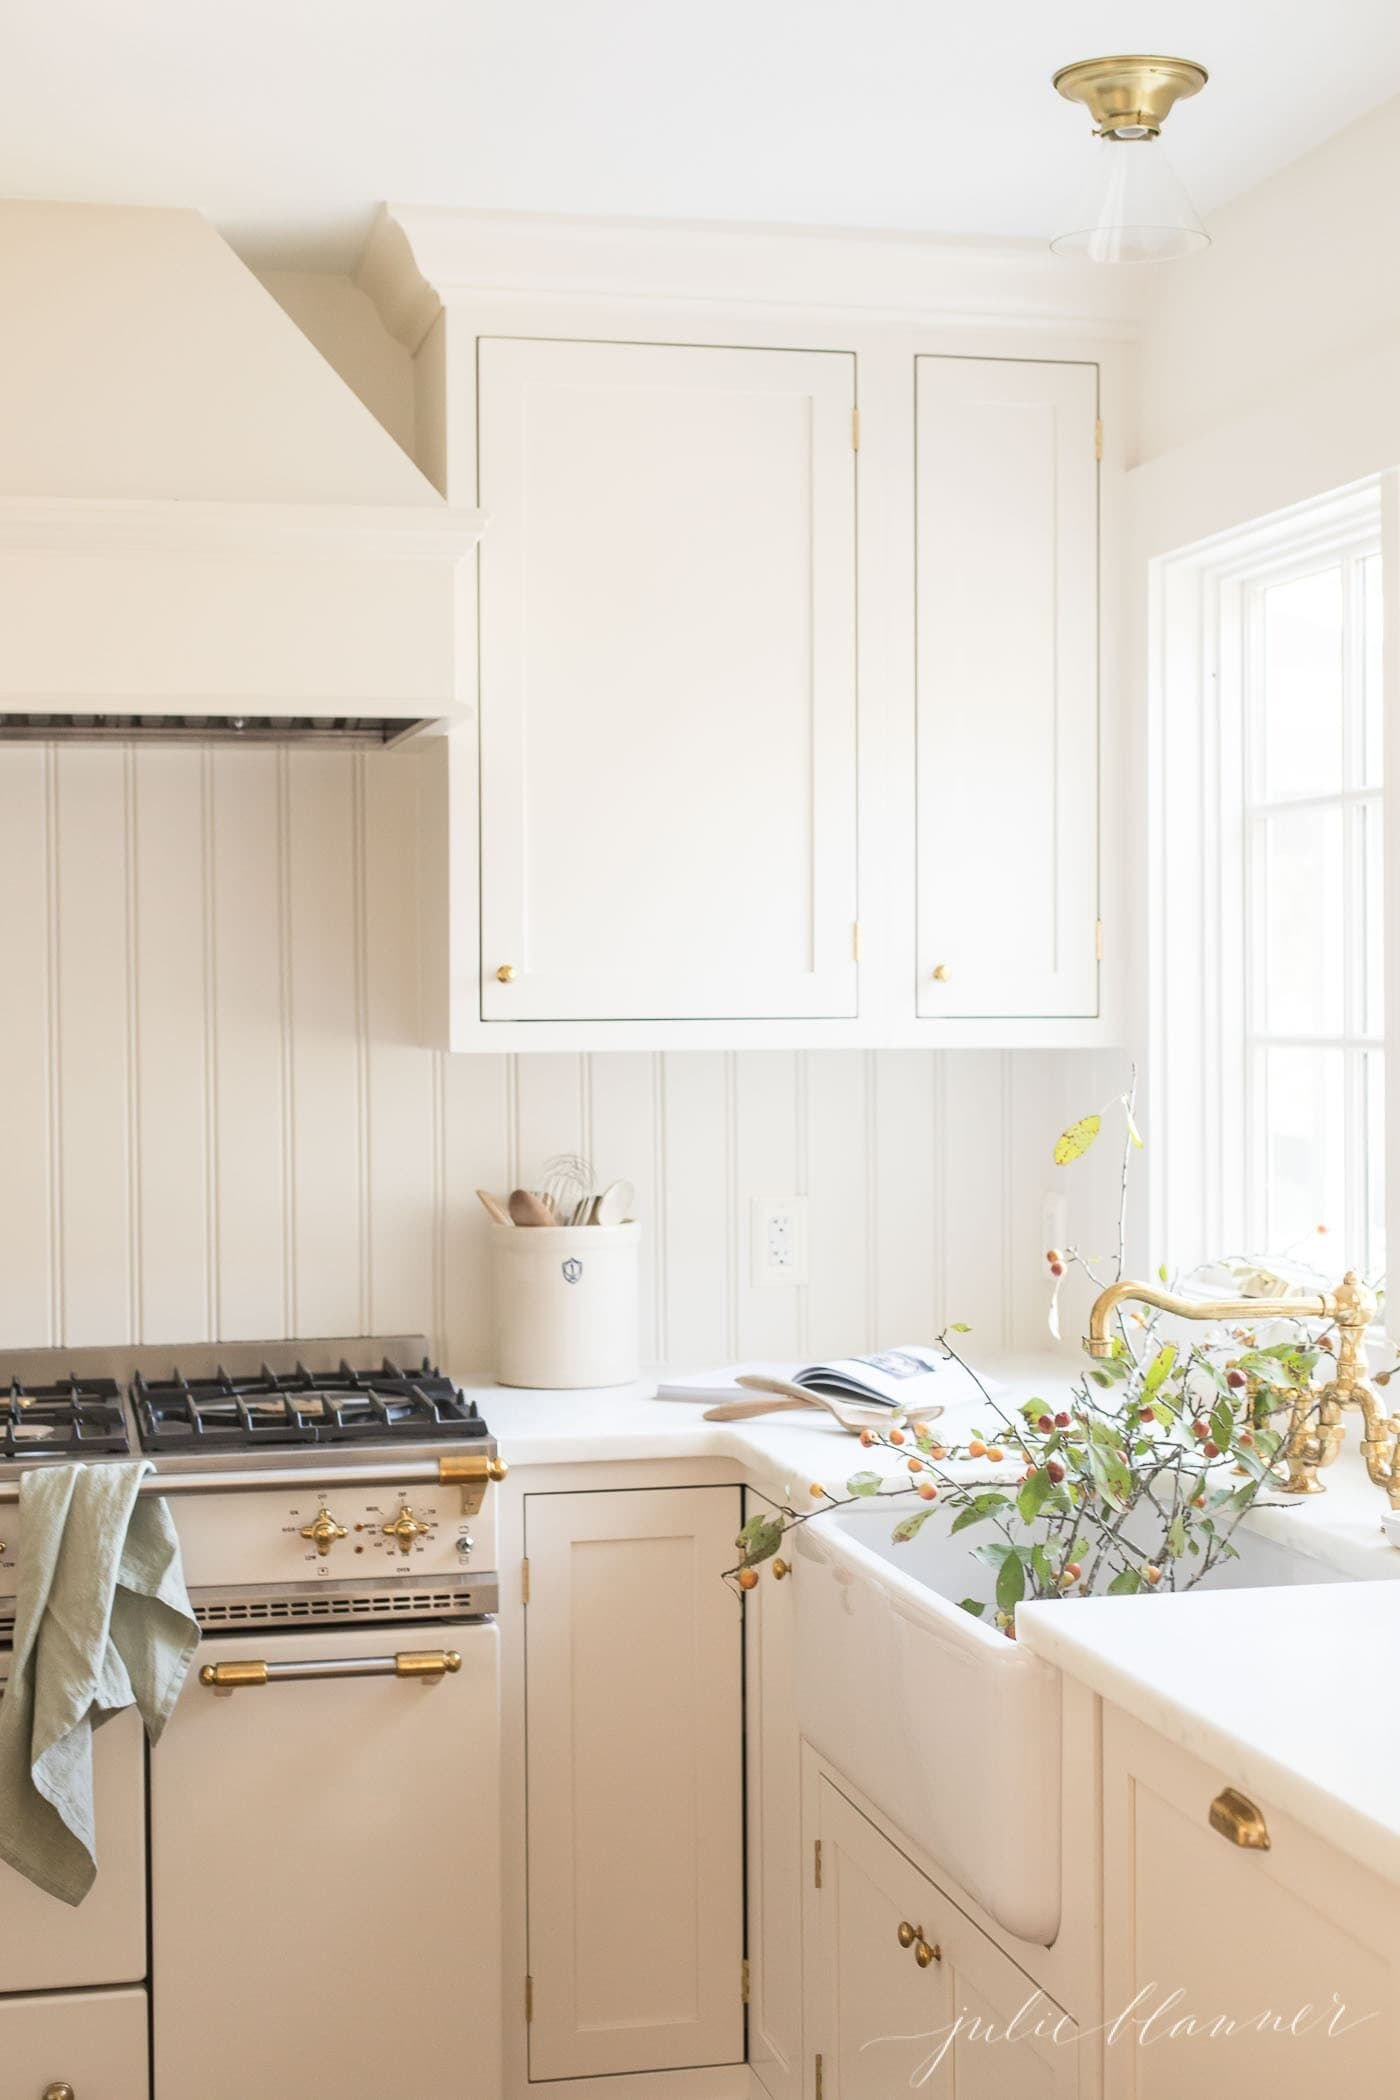 White kitchen cabinets with fall branches in the farm sink.